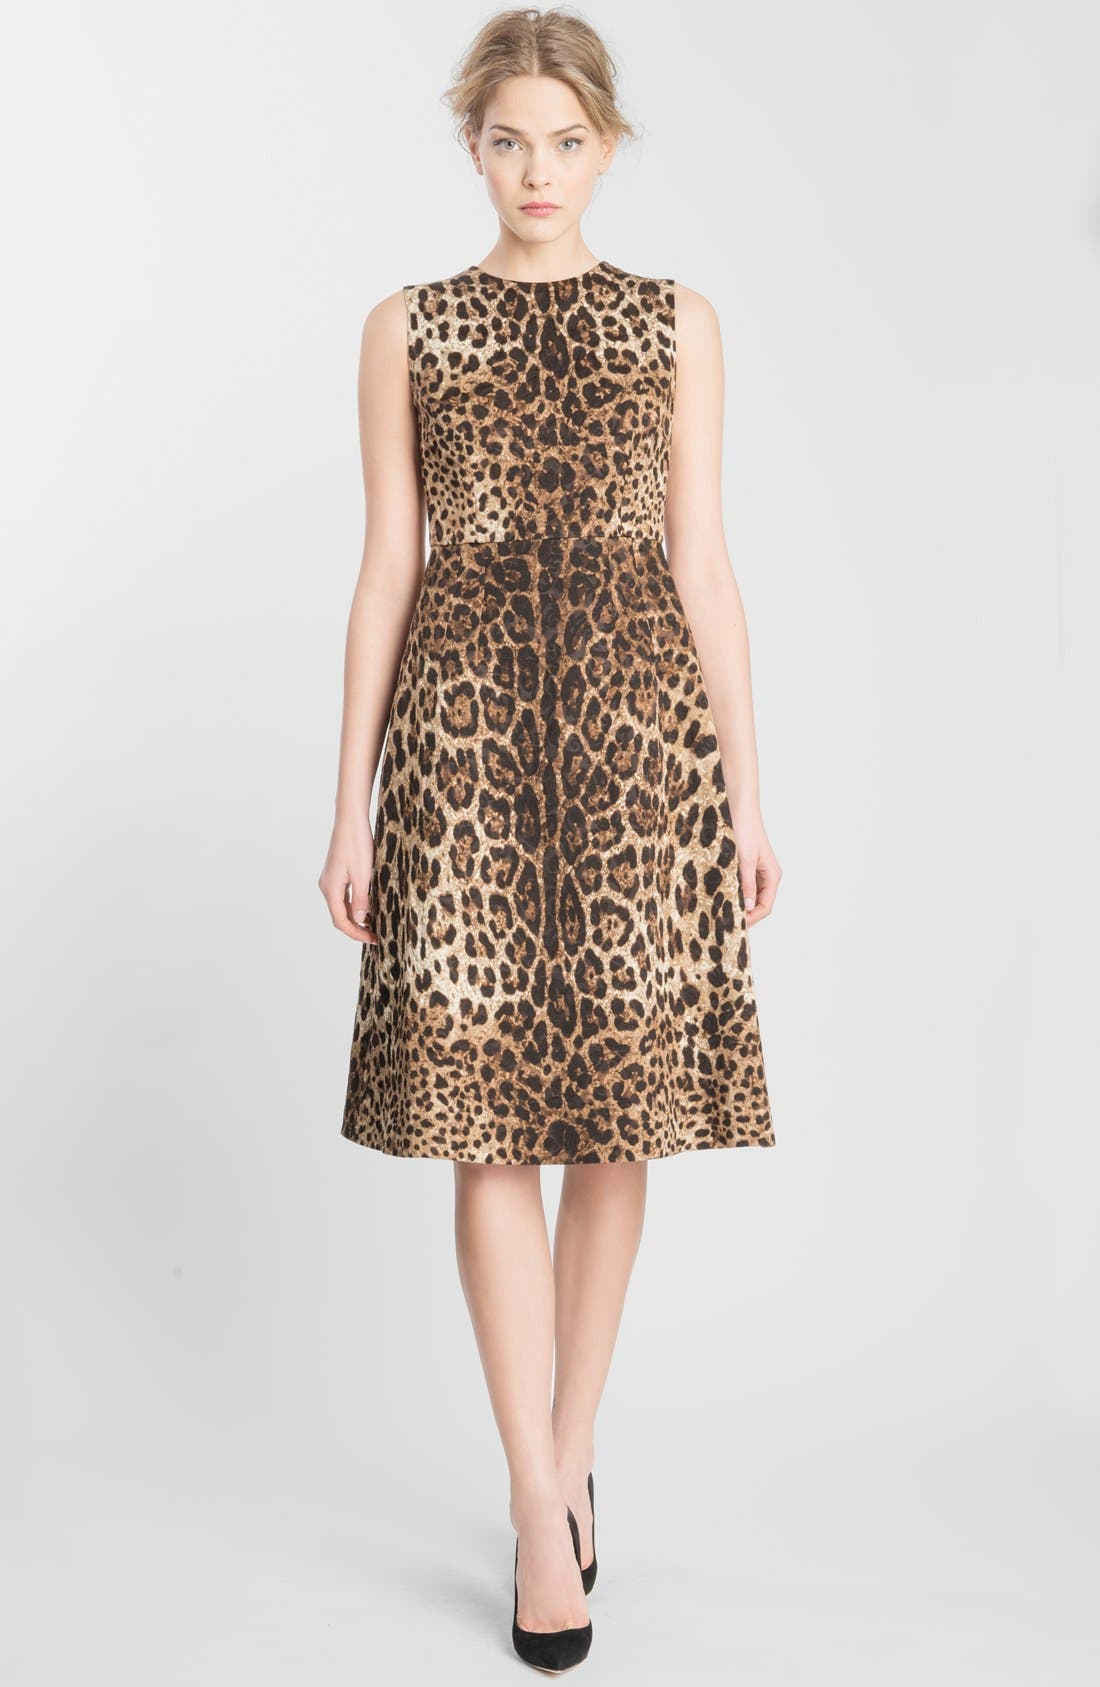 Main Image - Dolce&Gabbana Leopard Print Fit & Flare Dress